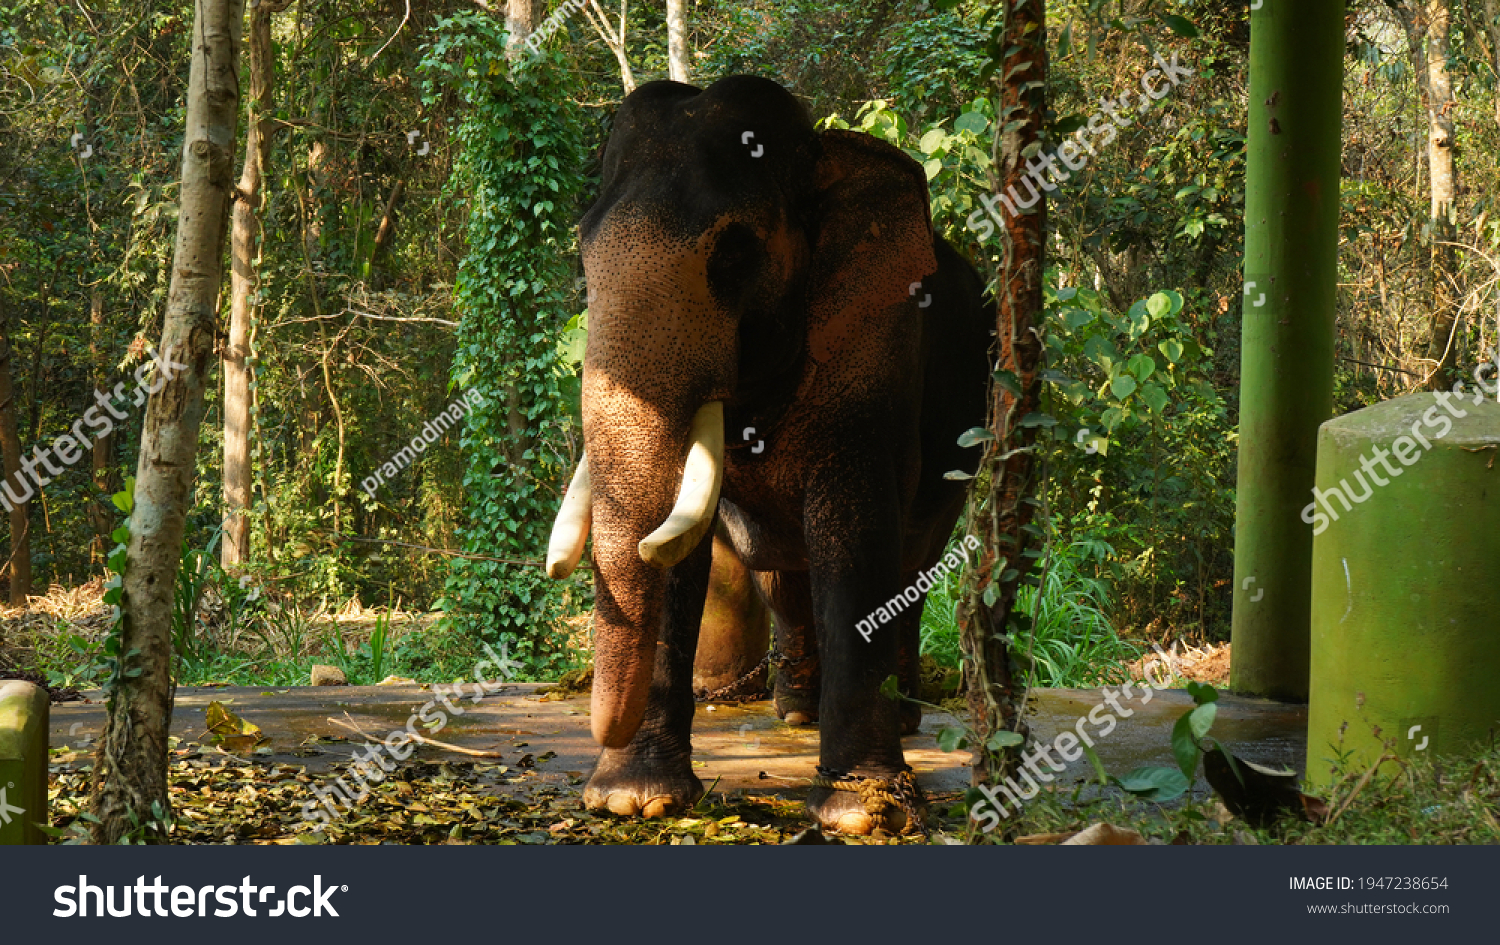 Kodanad Elephant Training Centre, one of the largest elephant training centers in Kerala. Since the capture of pachyderms was deemed illegal in the state,   #1947238654